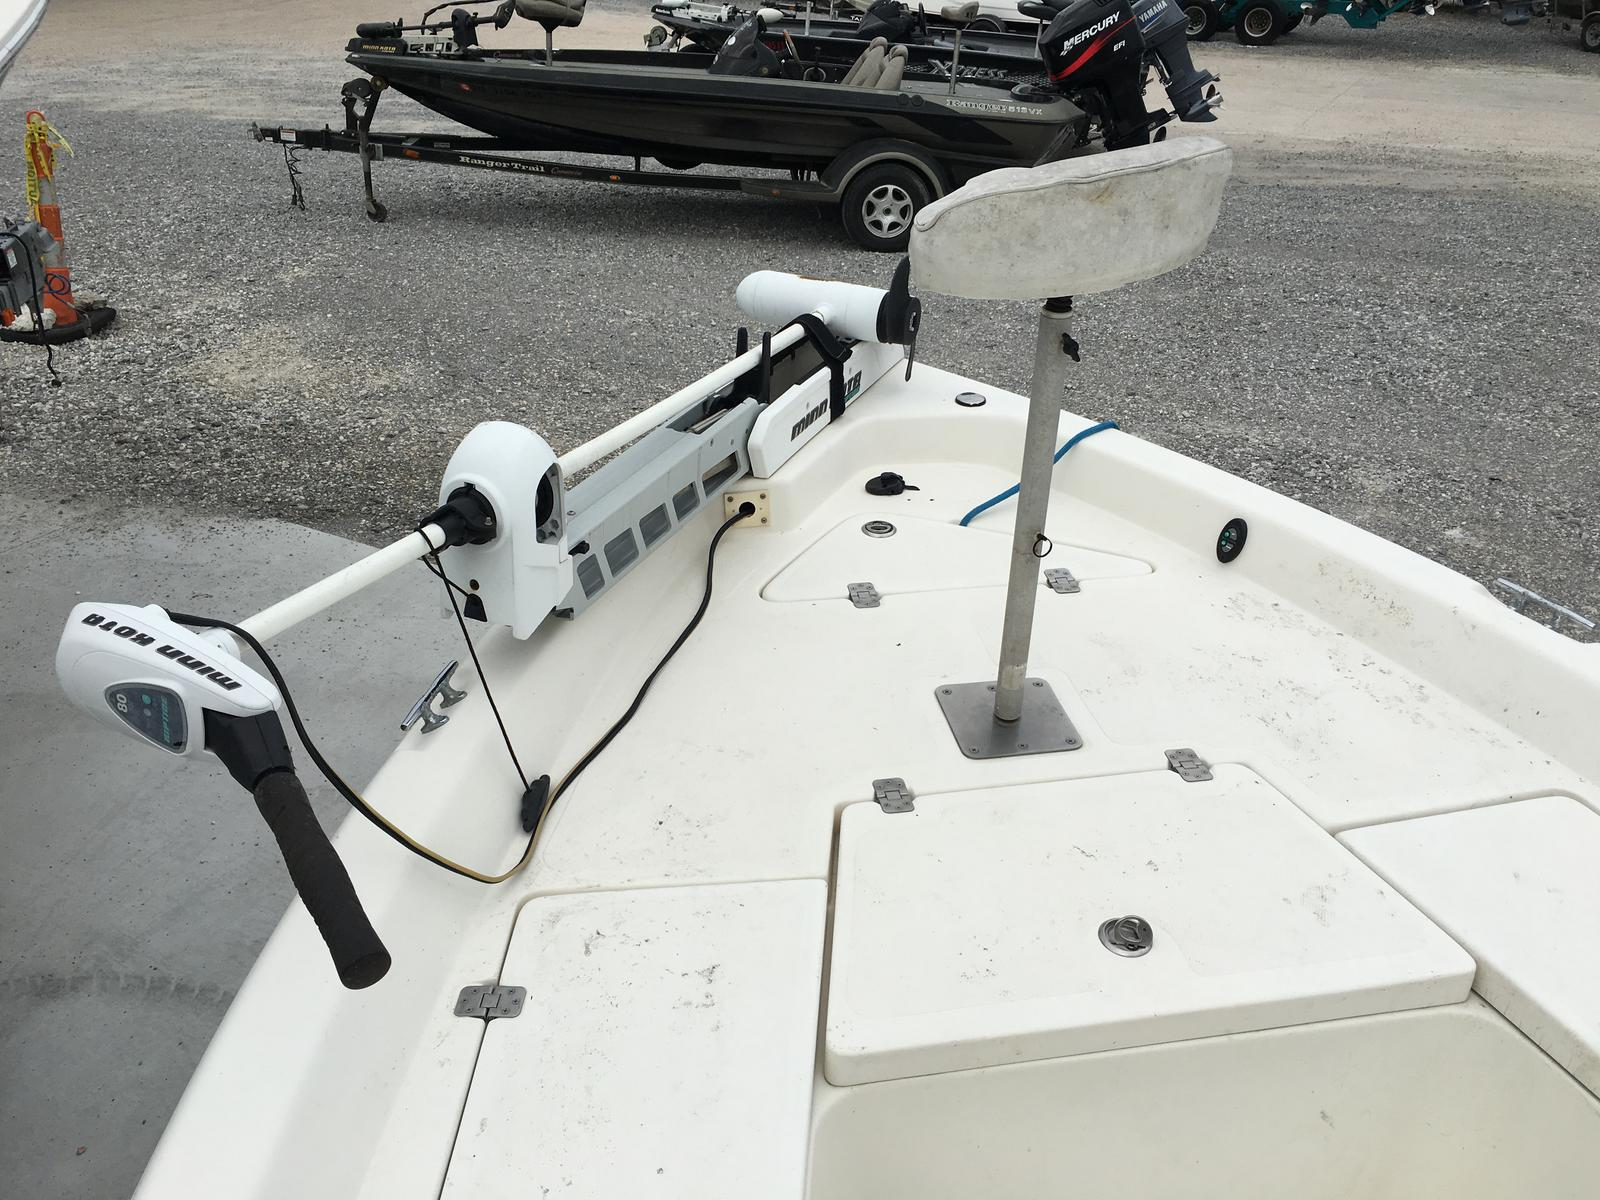 2006 Nautic Star boat for sale, model of the boat is 2110 & Image # 7 of 11